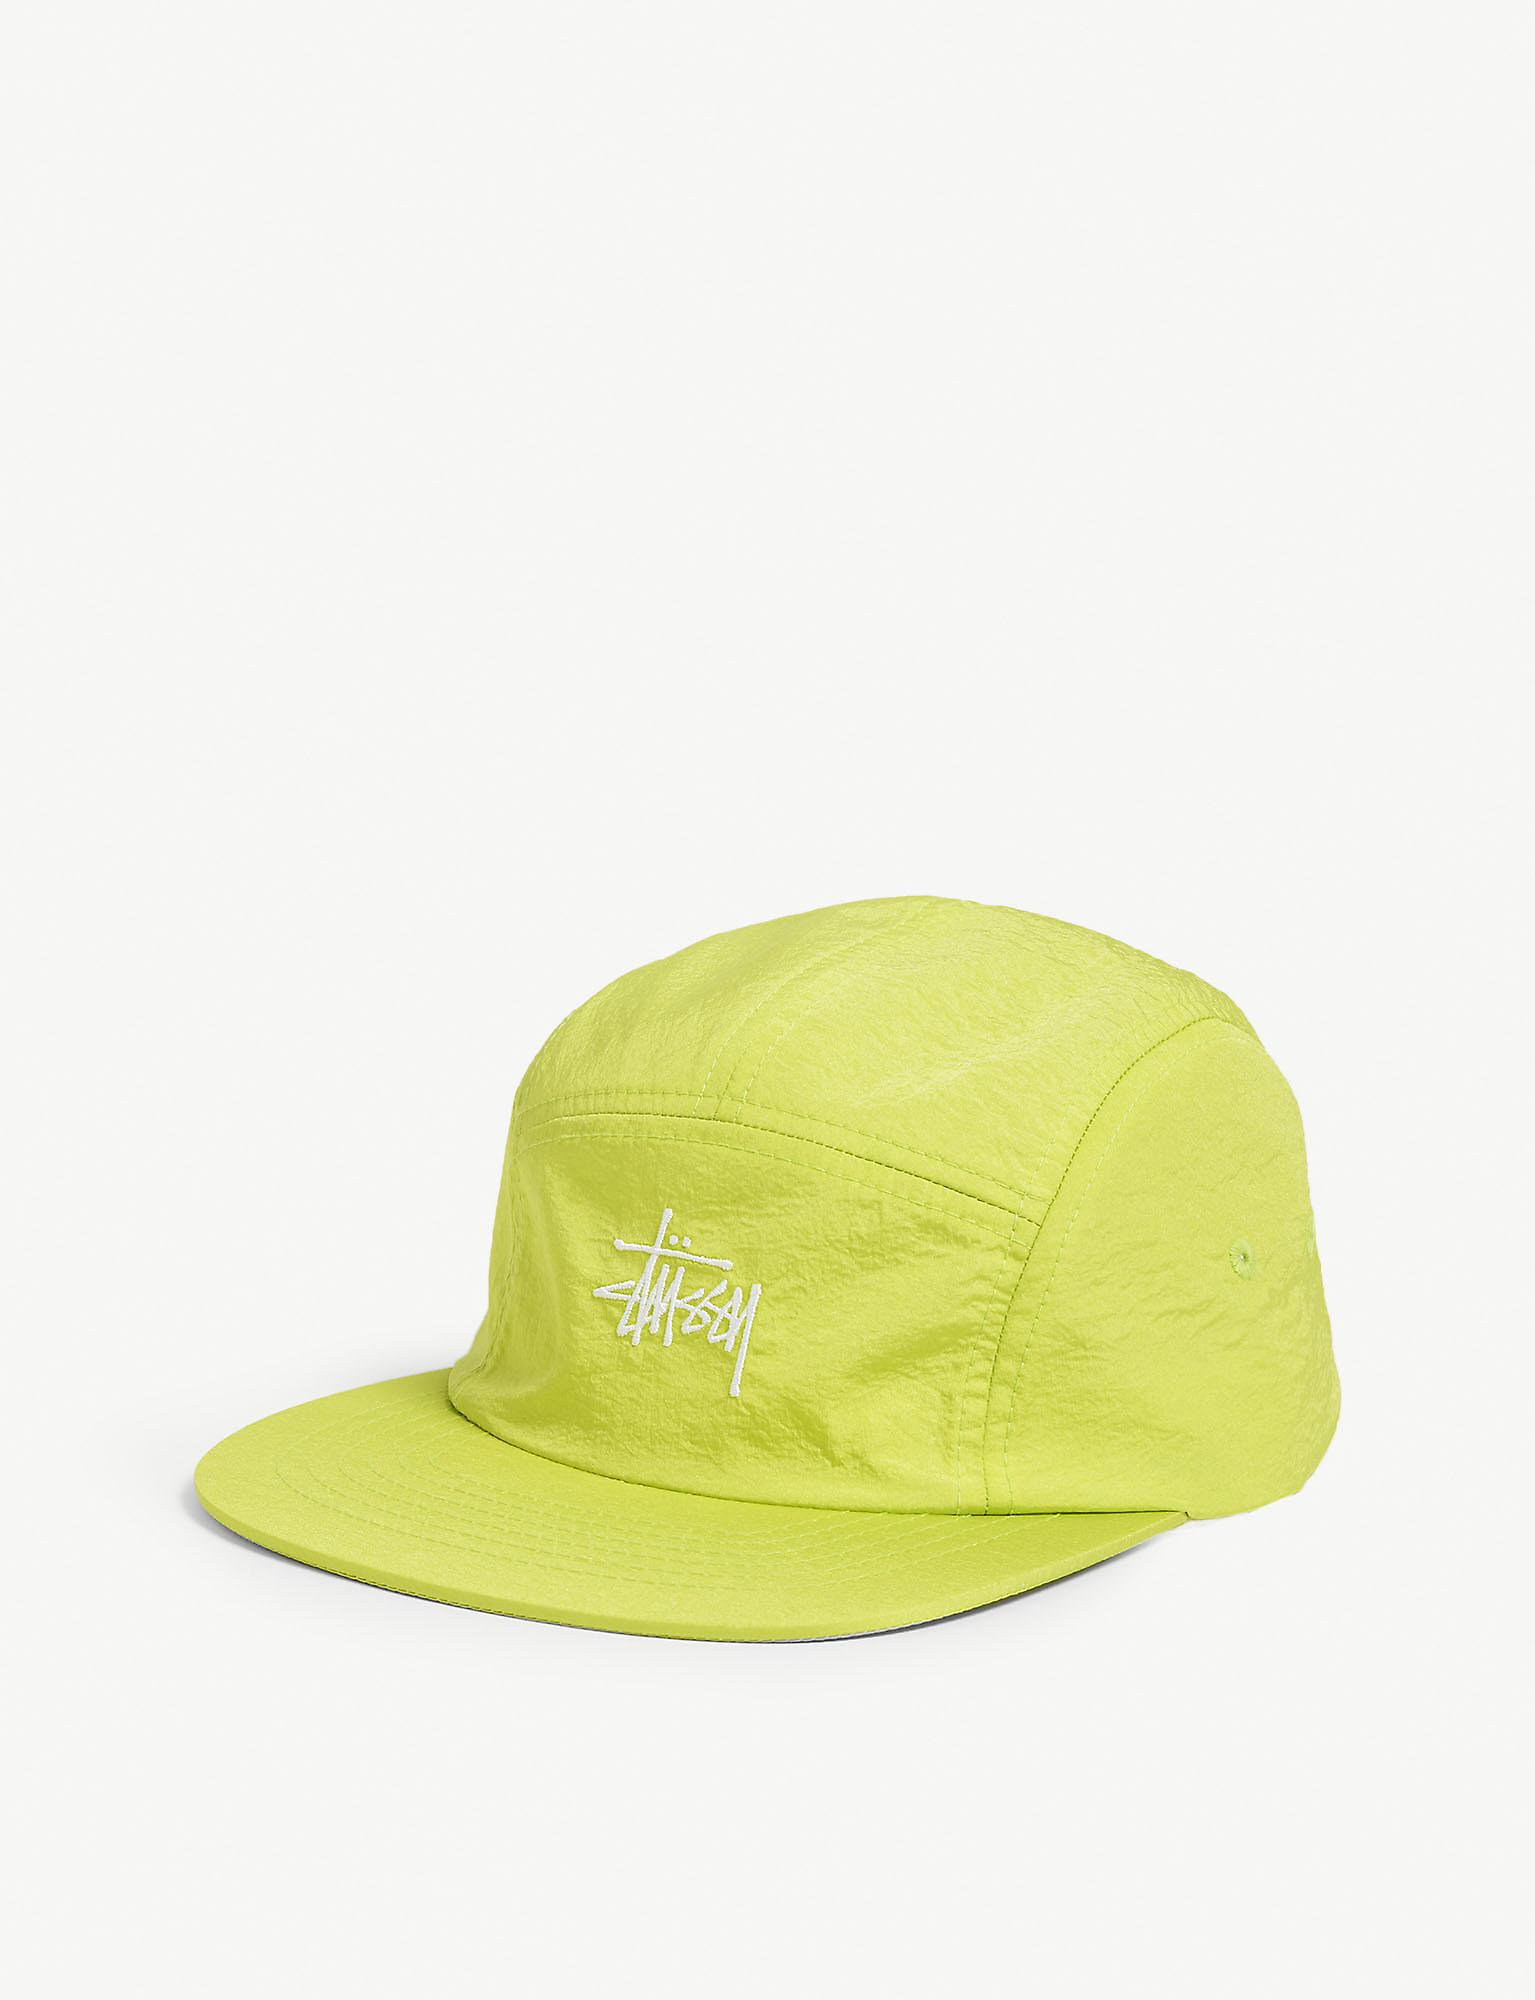 bed1bf7678316 Stussy Logo Baseball Cap in Yellow for Men - Lyst